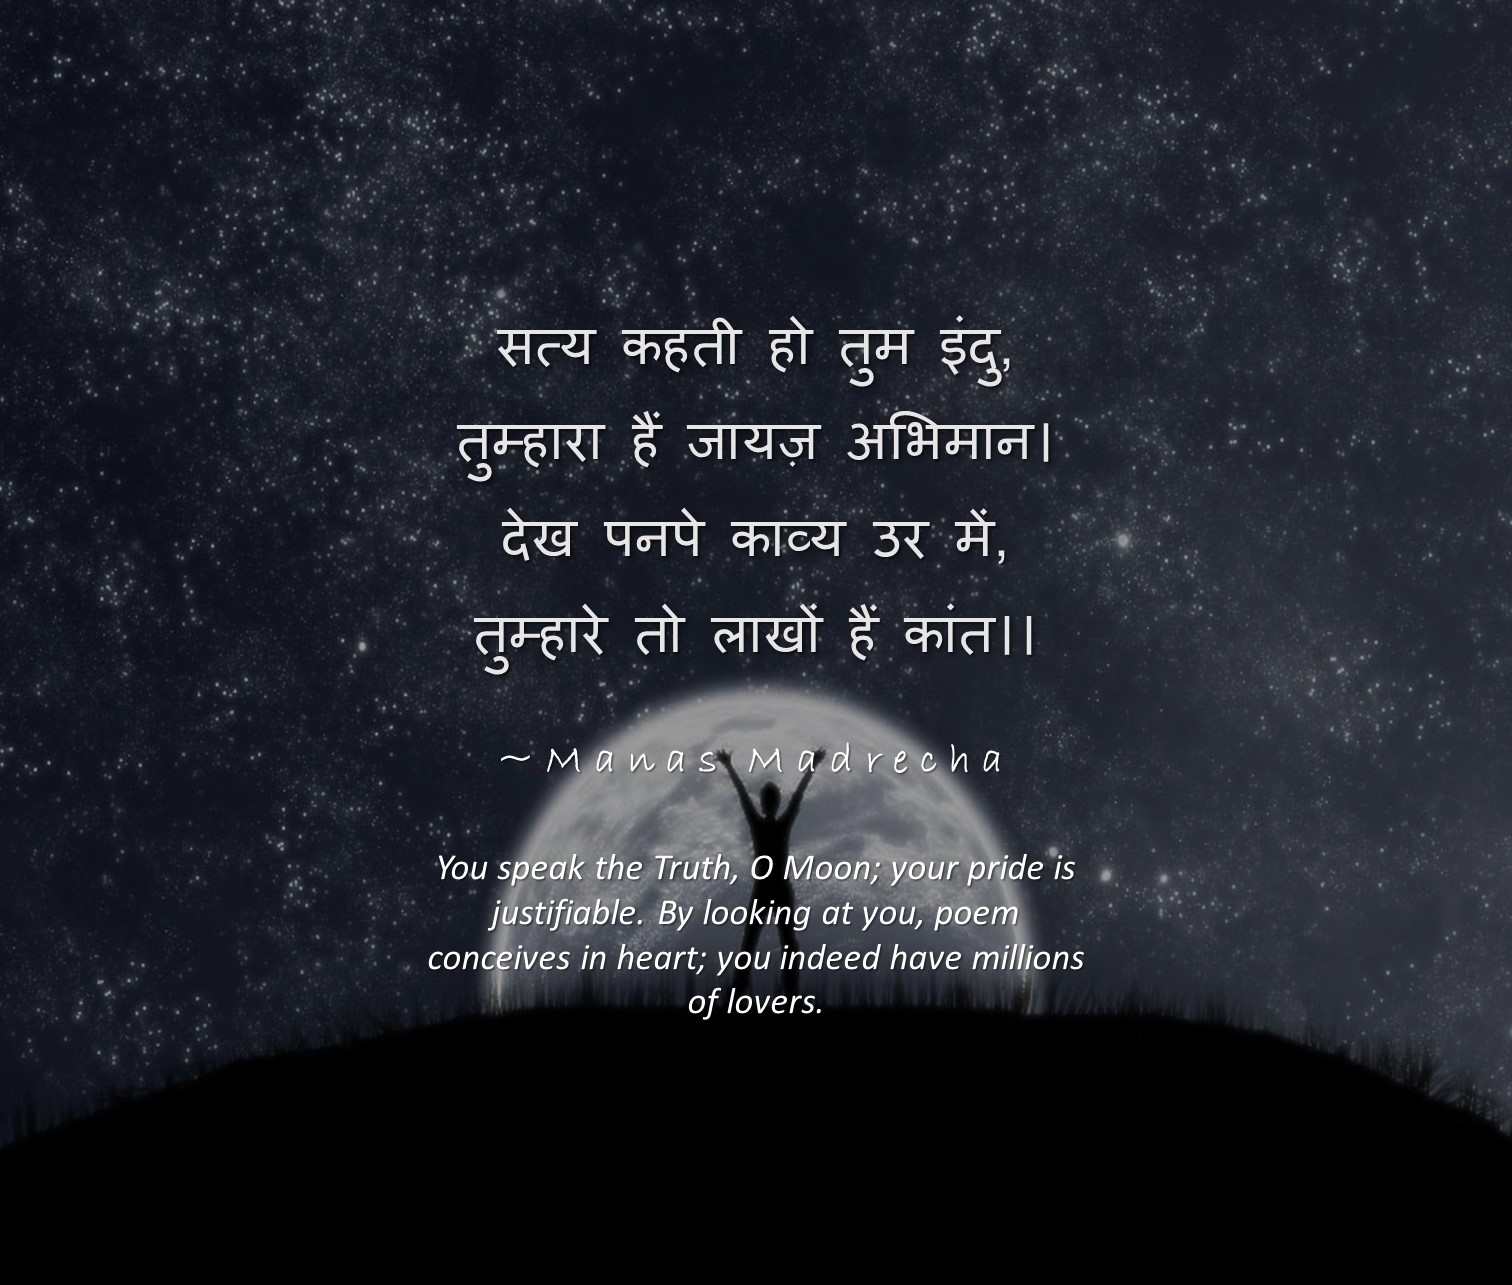 Hindi poem on moon, poem on moon, moon quotes, moon sky, moon in night sky, starry sky, boy seeing moon, man seeing moon, big moon, super moon, moon shining,Manas Madrecha, Manas Madrecha poems, Manas Madrecha quotes, Manas Madrecha stories, Manas Madrecha blog, simplifying universe, moon in the sky with stars, starry space moon